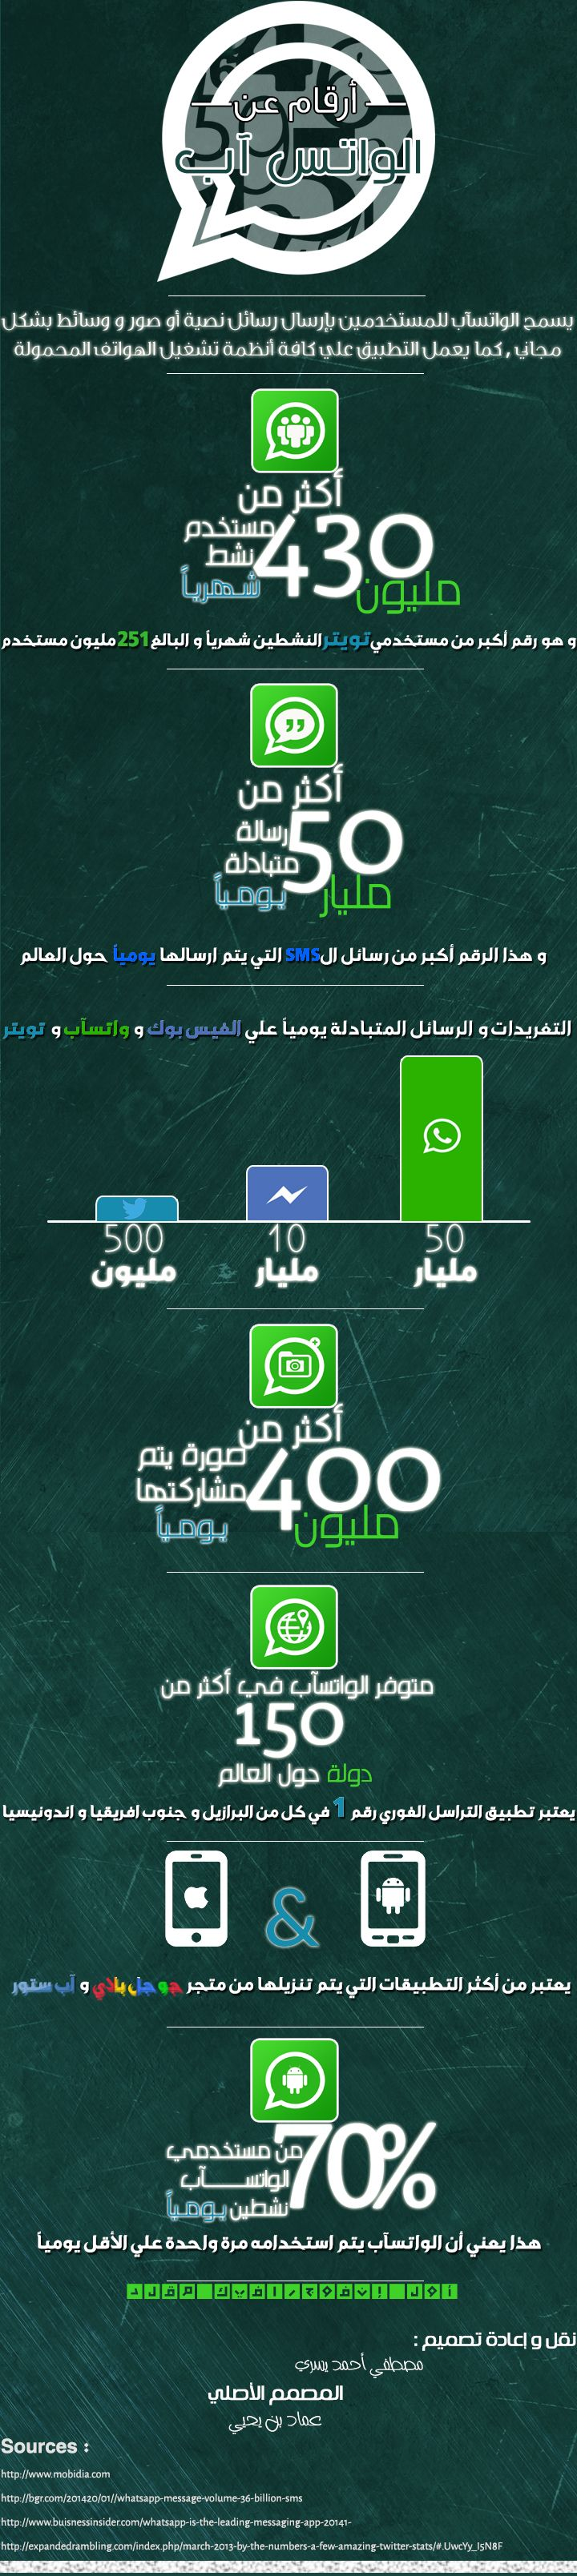 "WhatsApp Info-Graph .. Semi-Duplicated from Emad ben Yahya from ""tech-wd.com"" Edited by Mostafa Yosry .. Just starting .. Photoshop CC used ..  Source image : http://bit.ly/Whatsappig HQ : http://imgur.com/iQfCLPw"